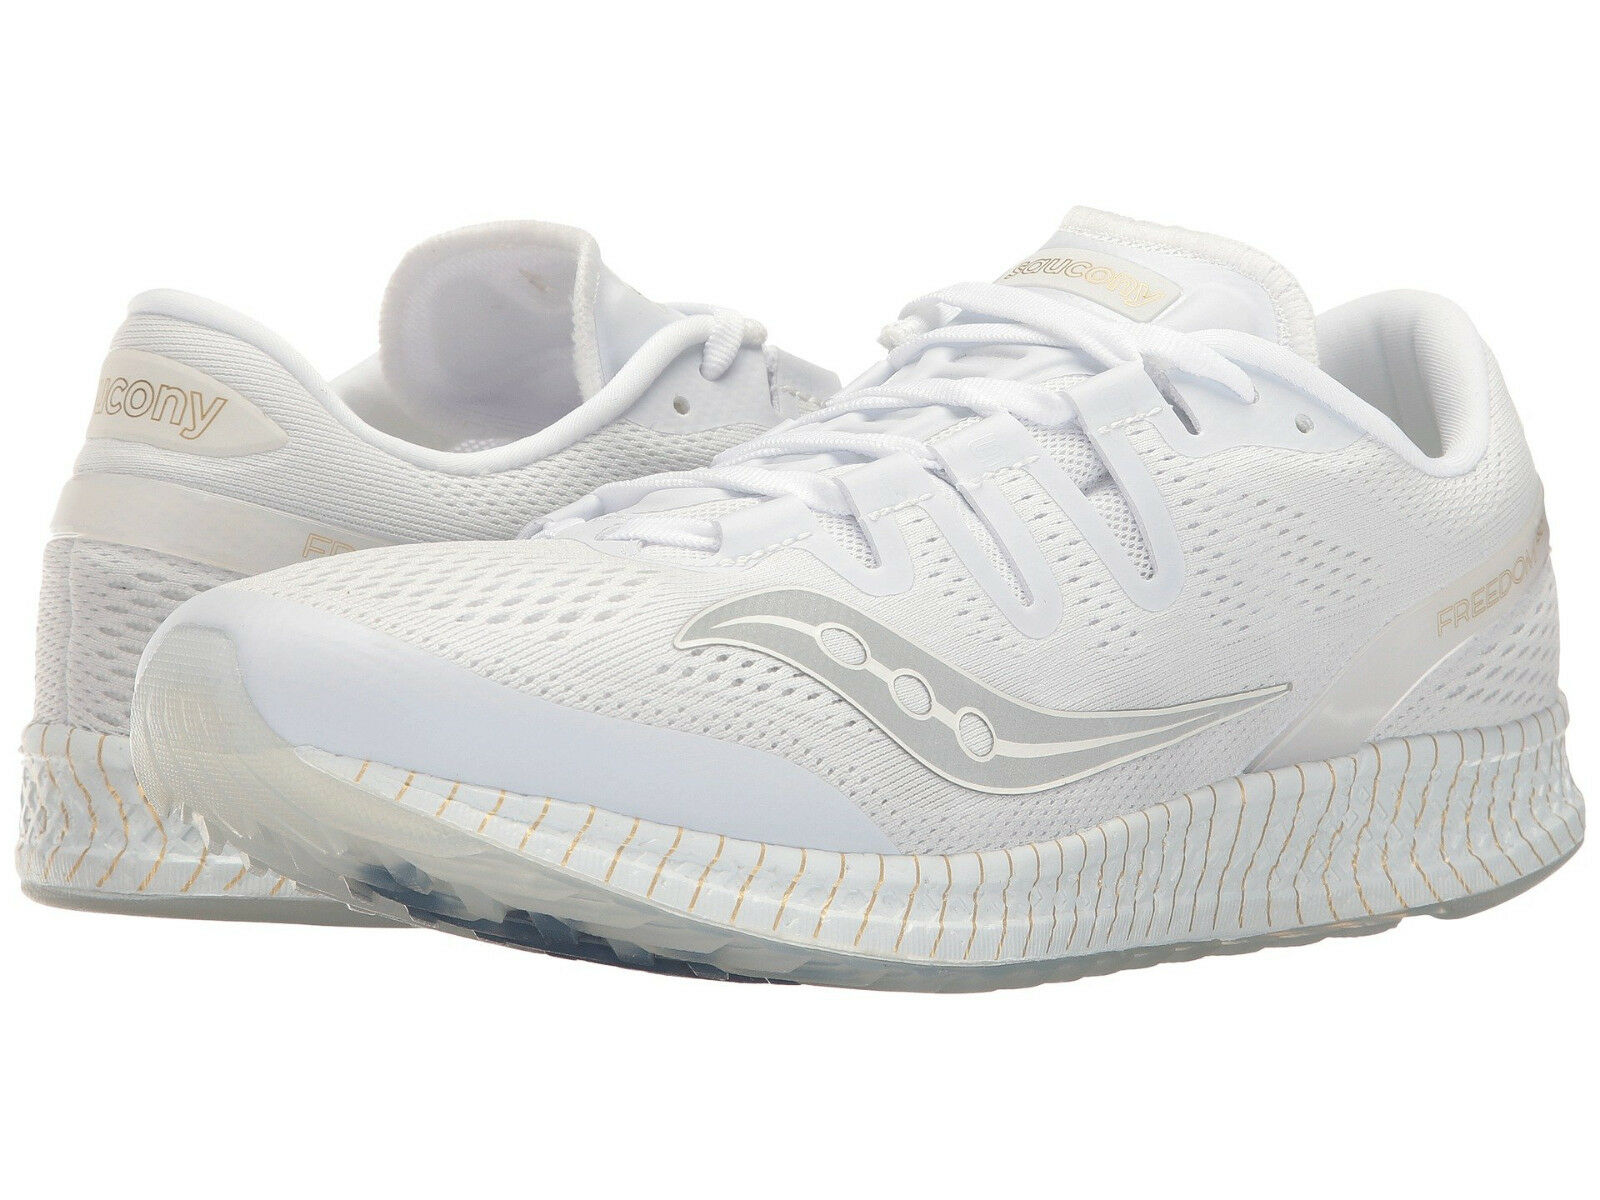 Saucony Men's Freedom ISO US 11 M White Mesh Running Sneakers shoes